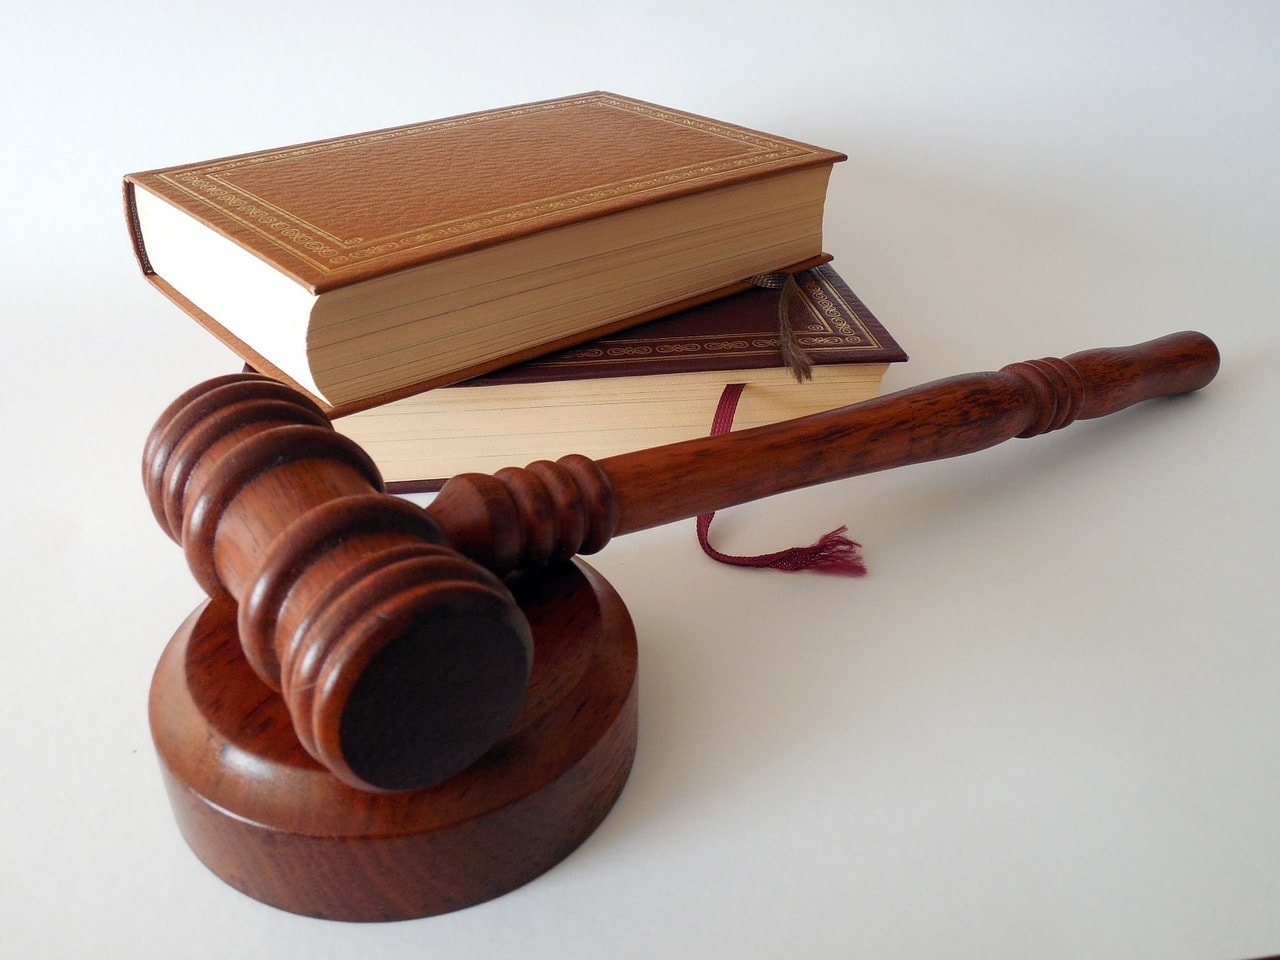 picture of legal items